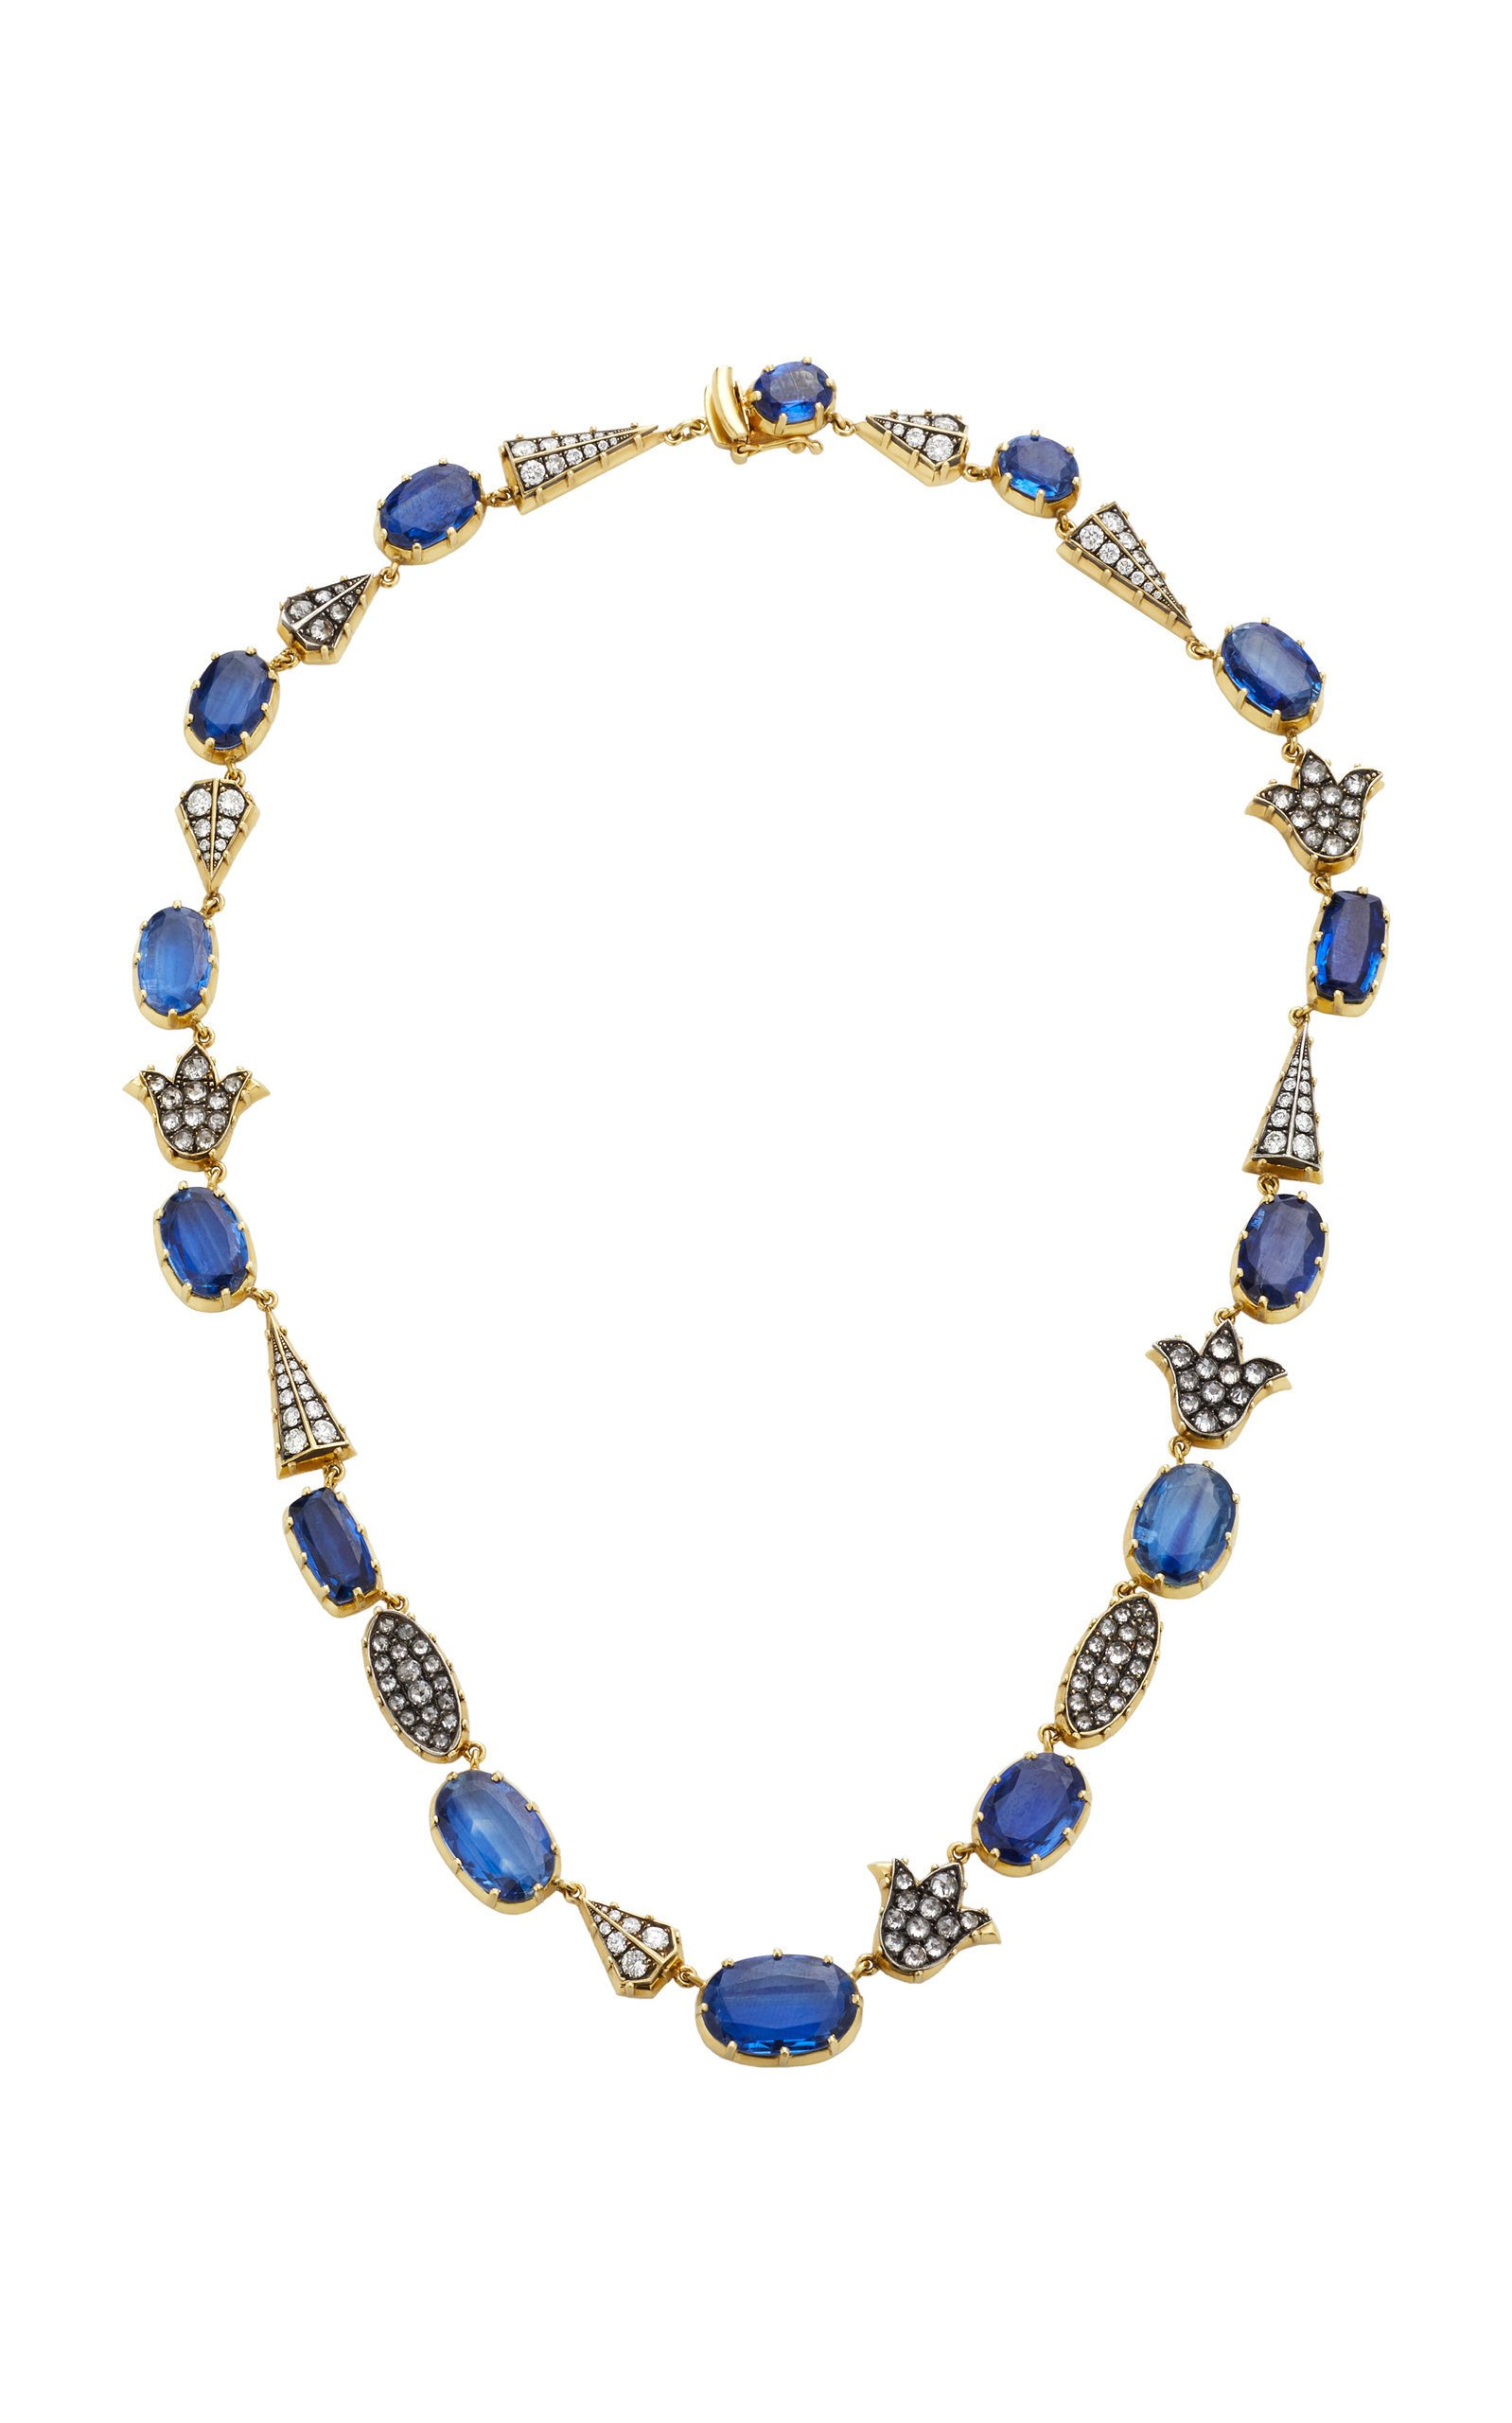 Sylva & Cie 18K Gold Sterling Silver Diamond and Kyanite Necklace